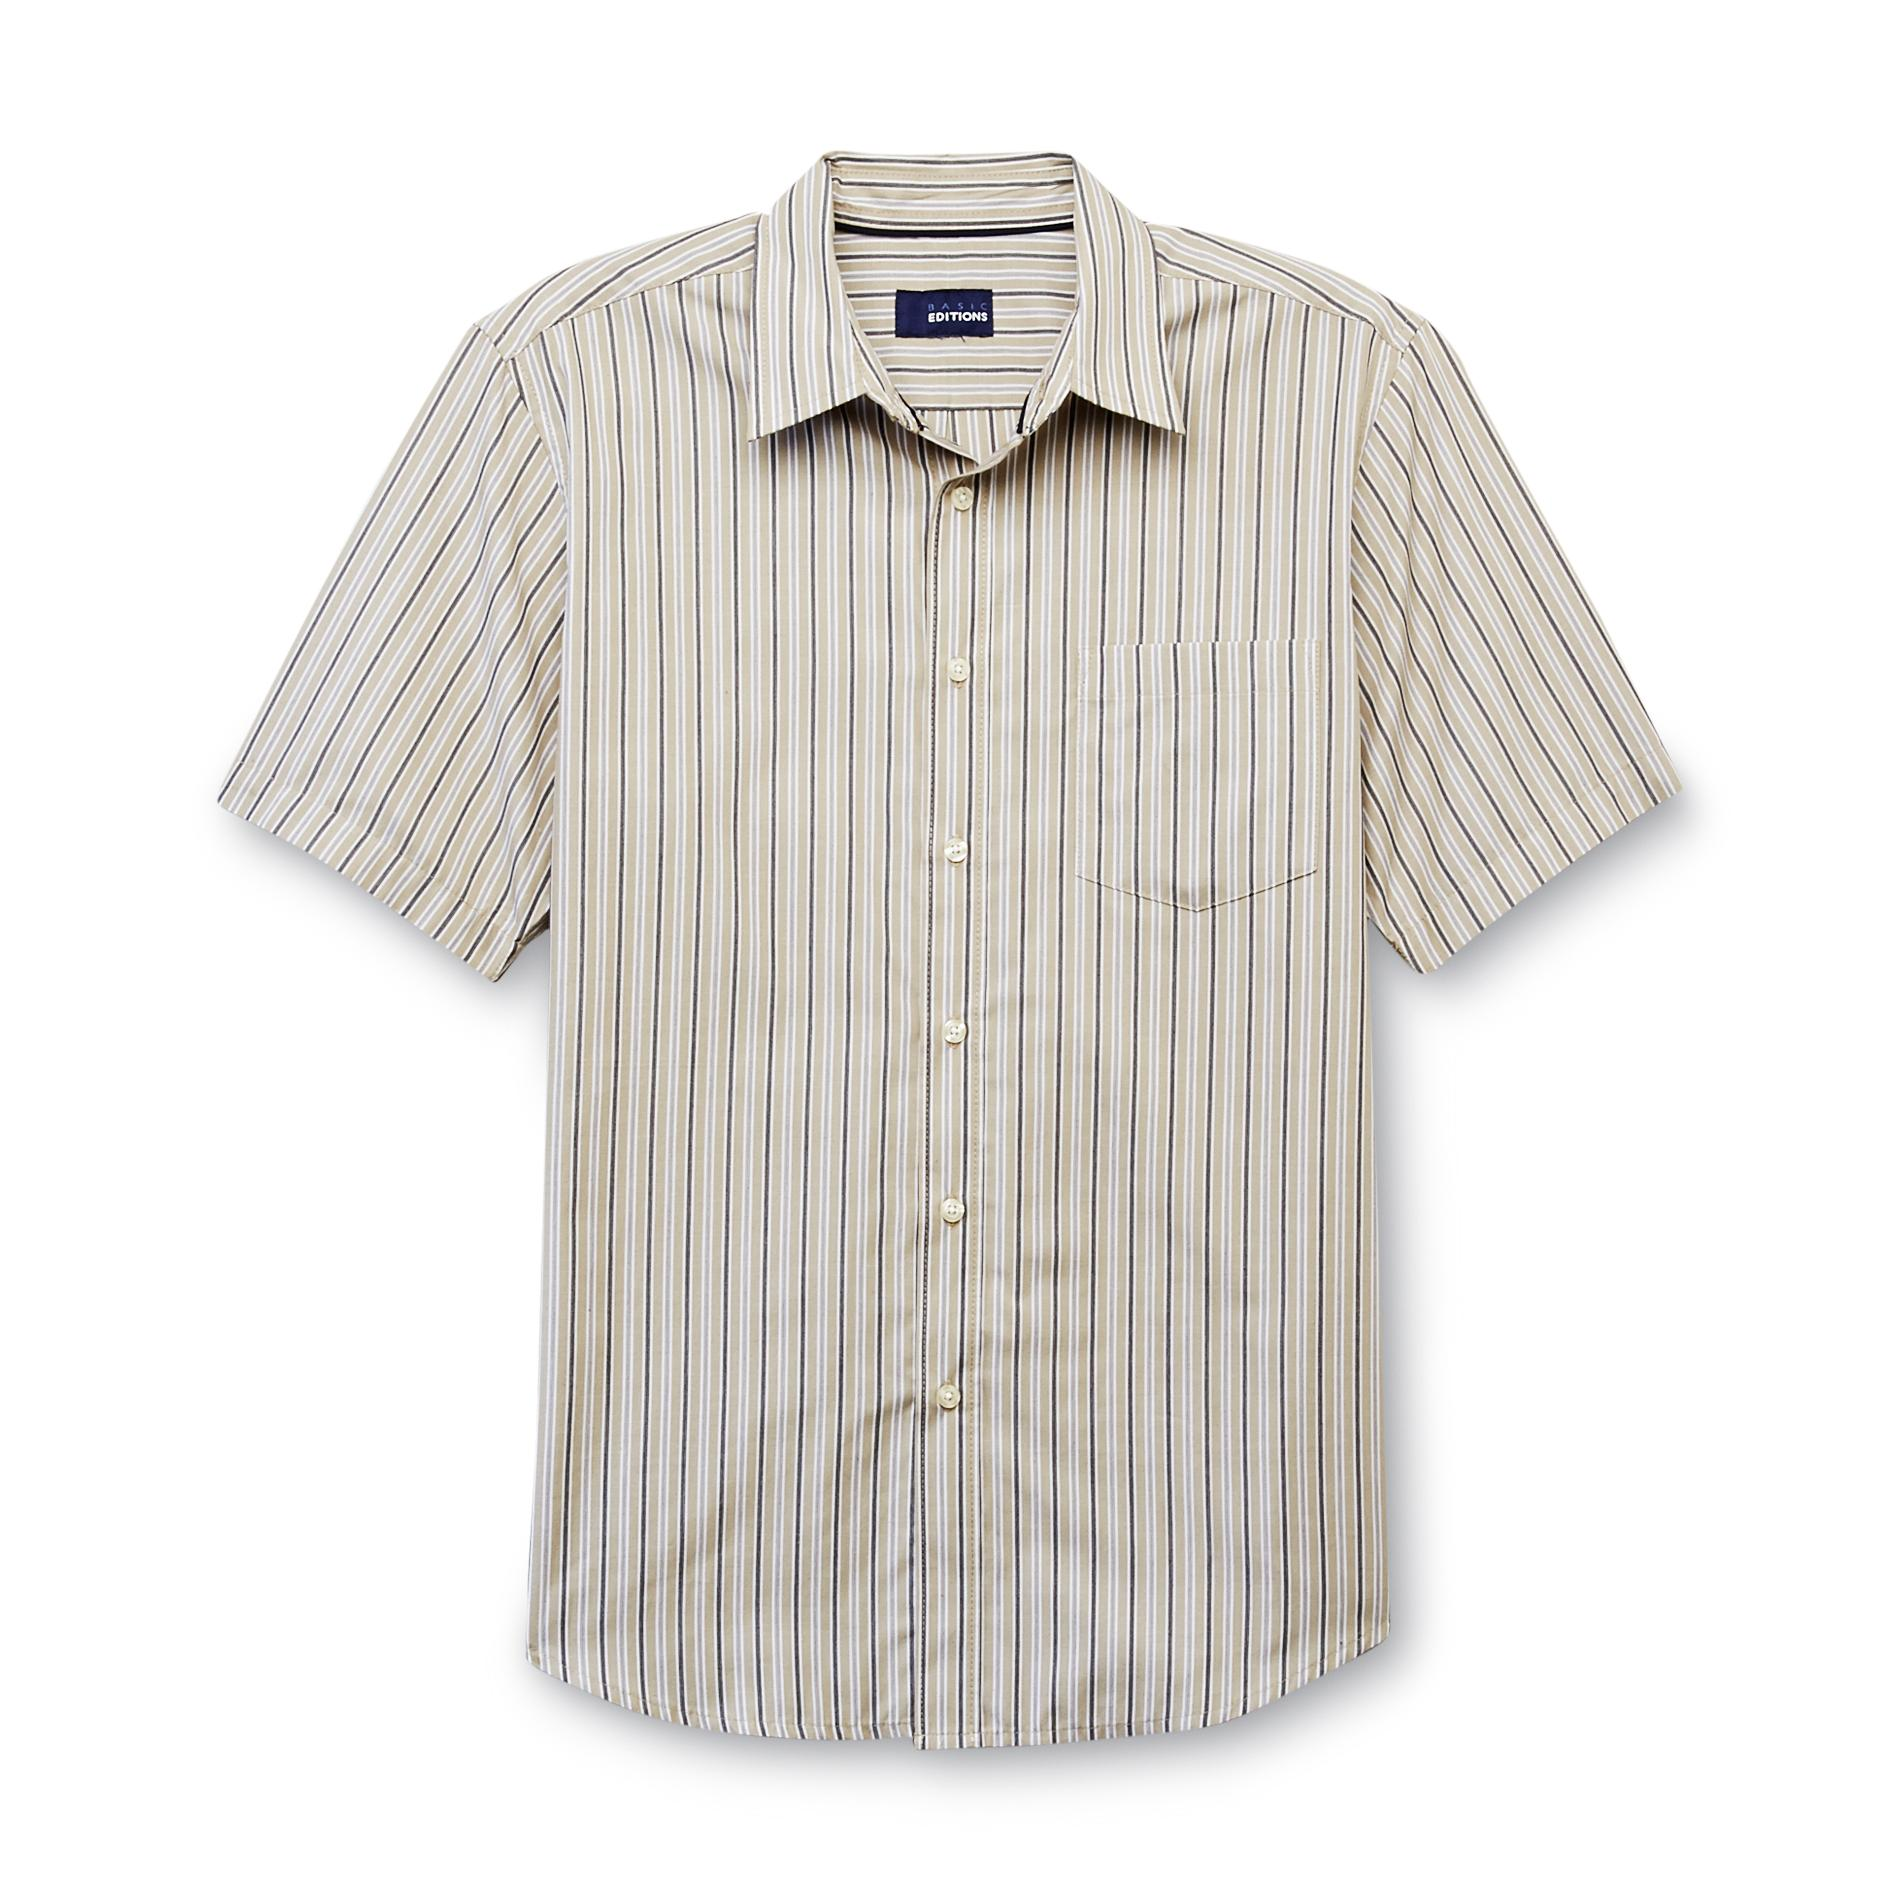 Basic Editions Men's Easy Care Woven Shirt - Striped at Kmart.com